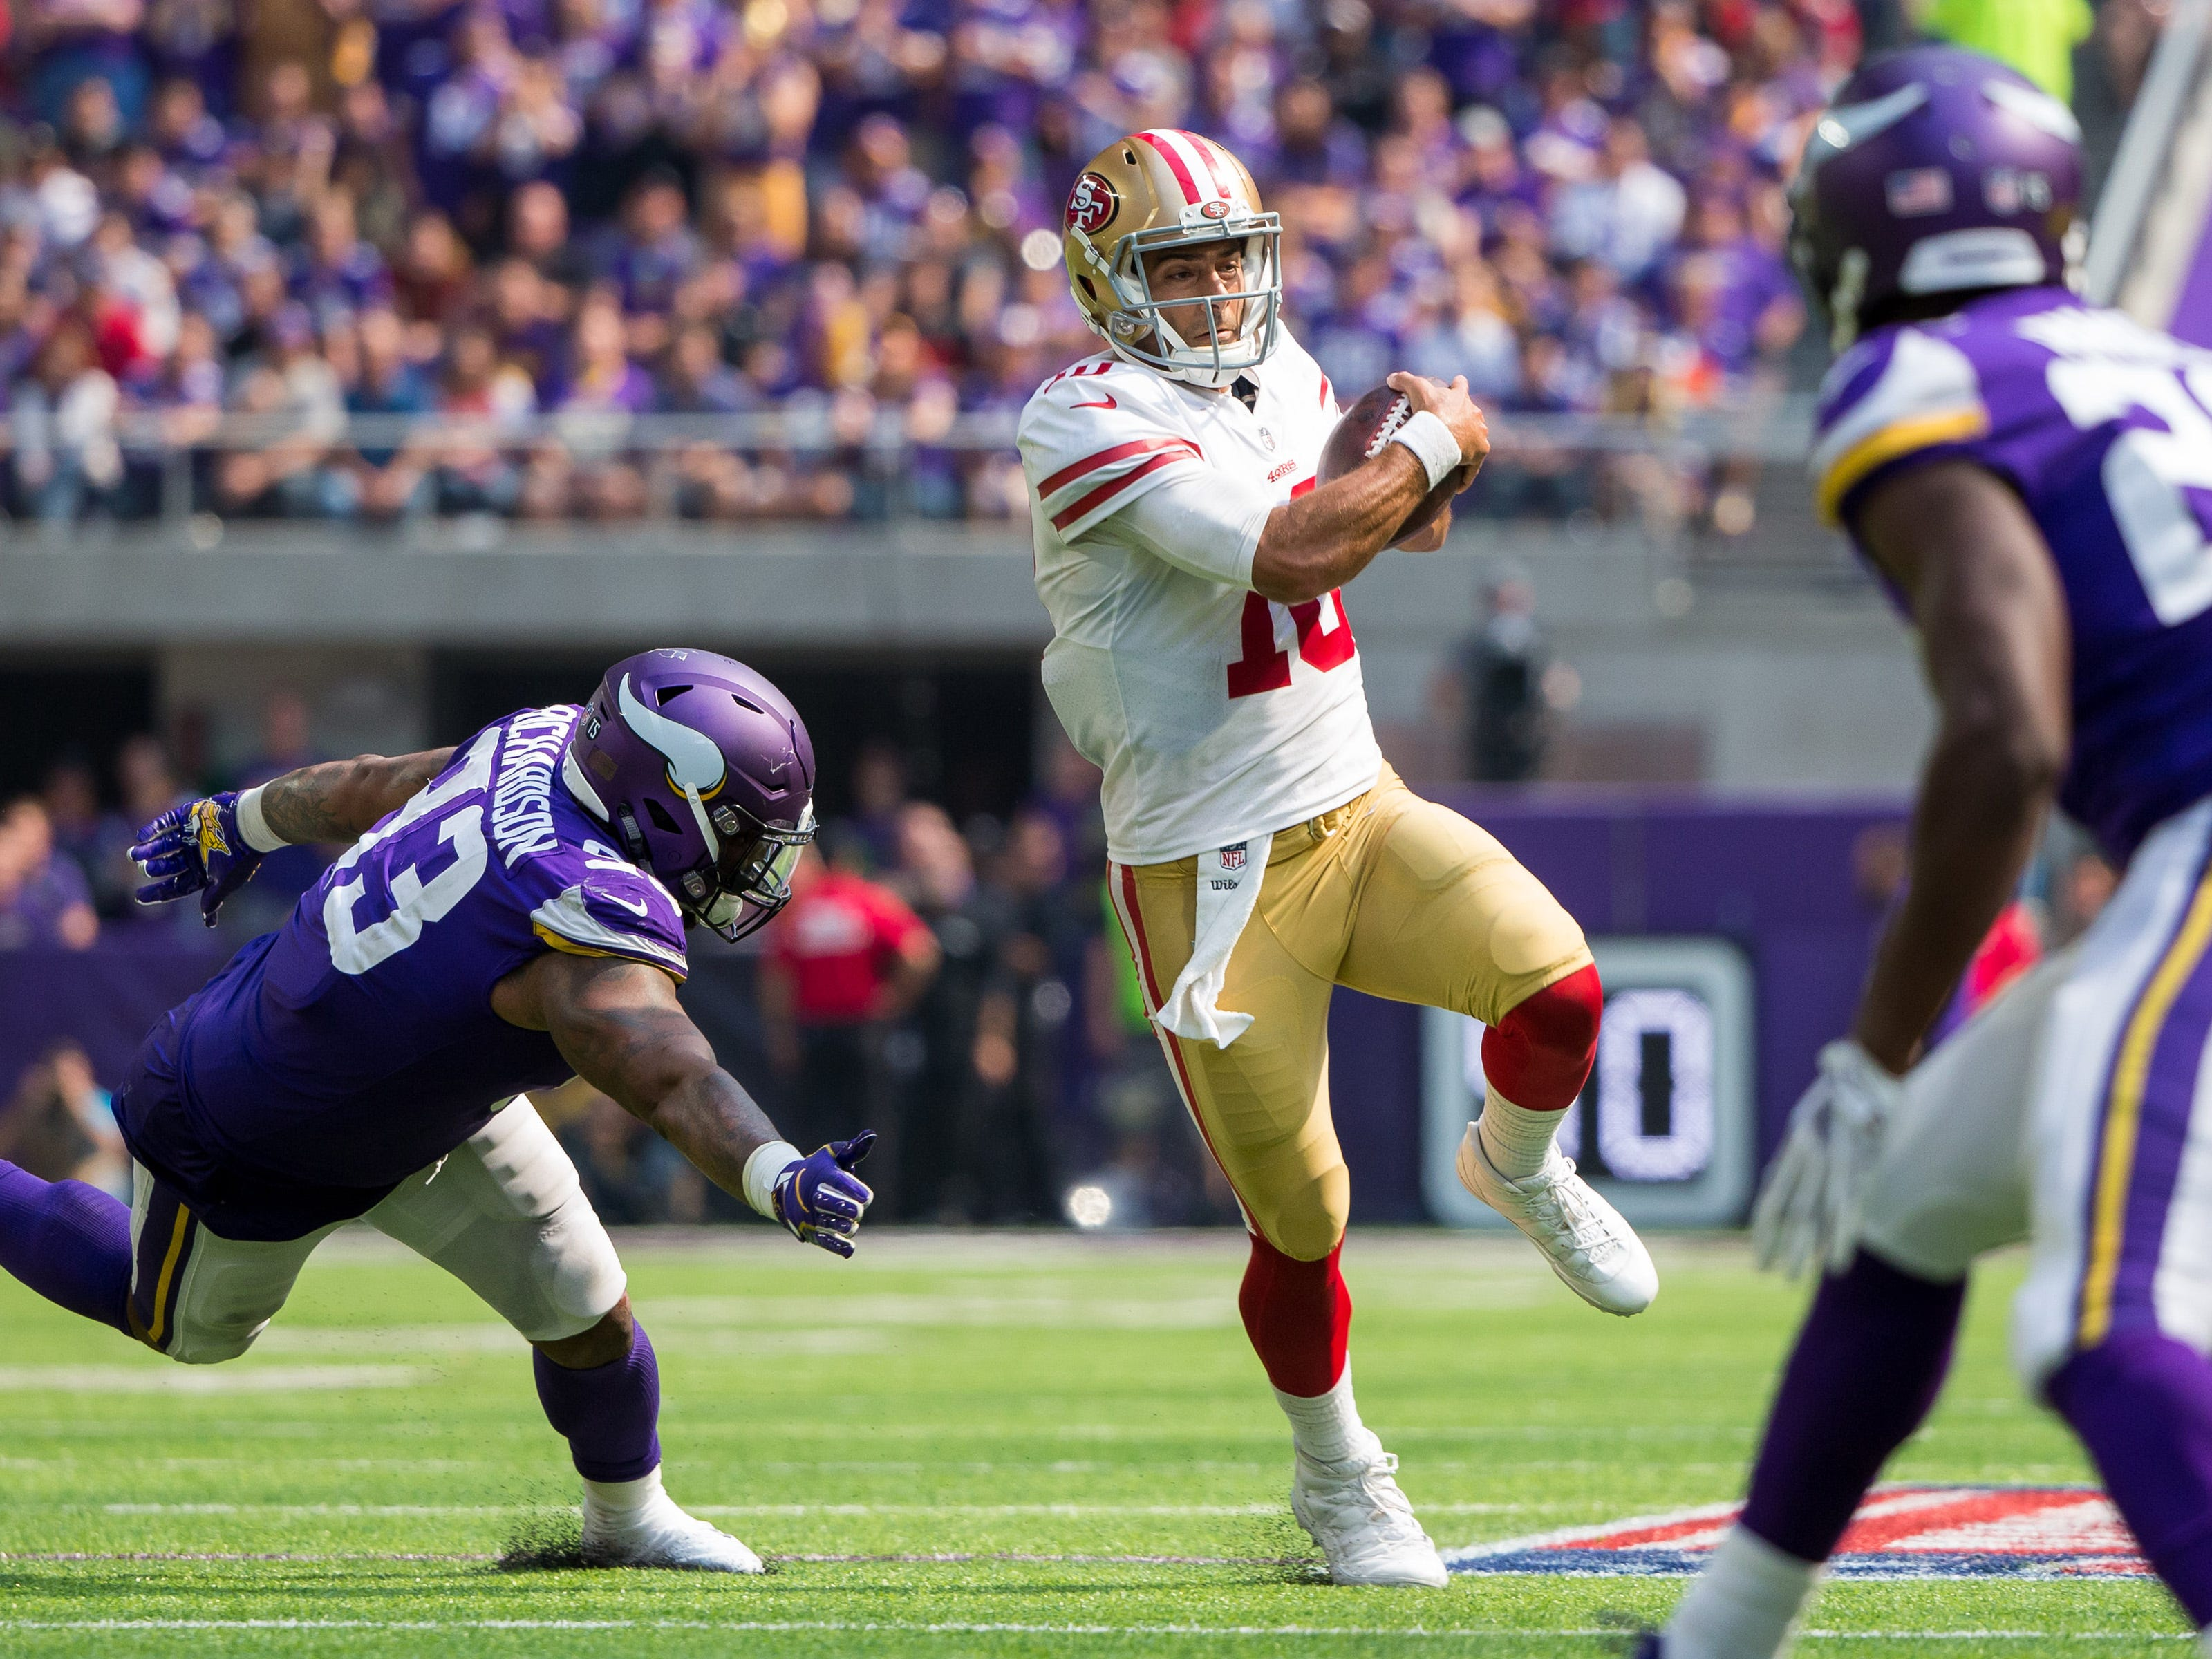 21. 49ers (23): Three INTs, sub-50% completion rate ... a LOSS. This is how the other half lives, Jimmy Garoppolo — not that we expect you to get used to it.